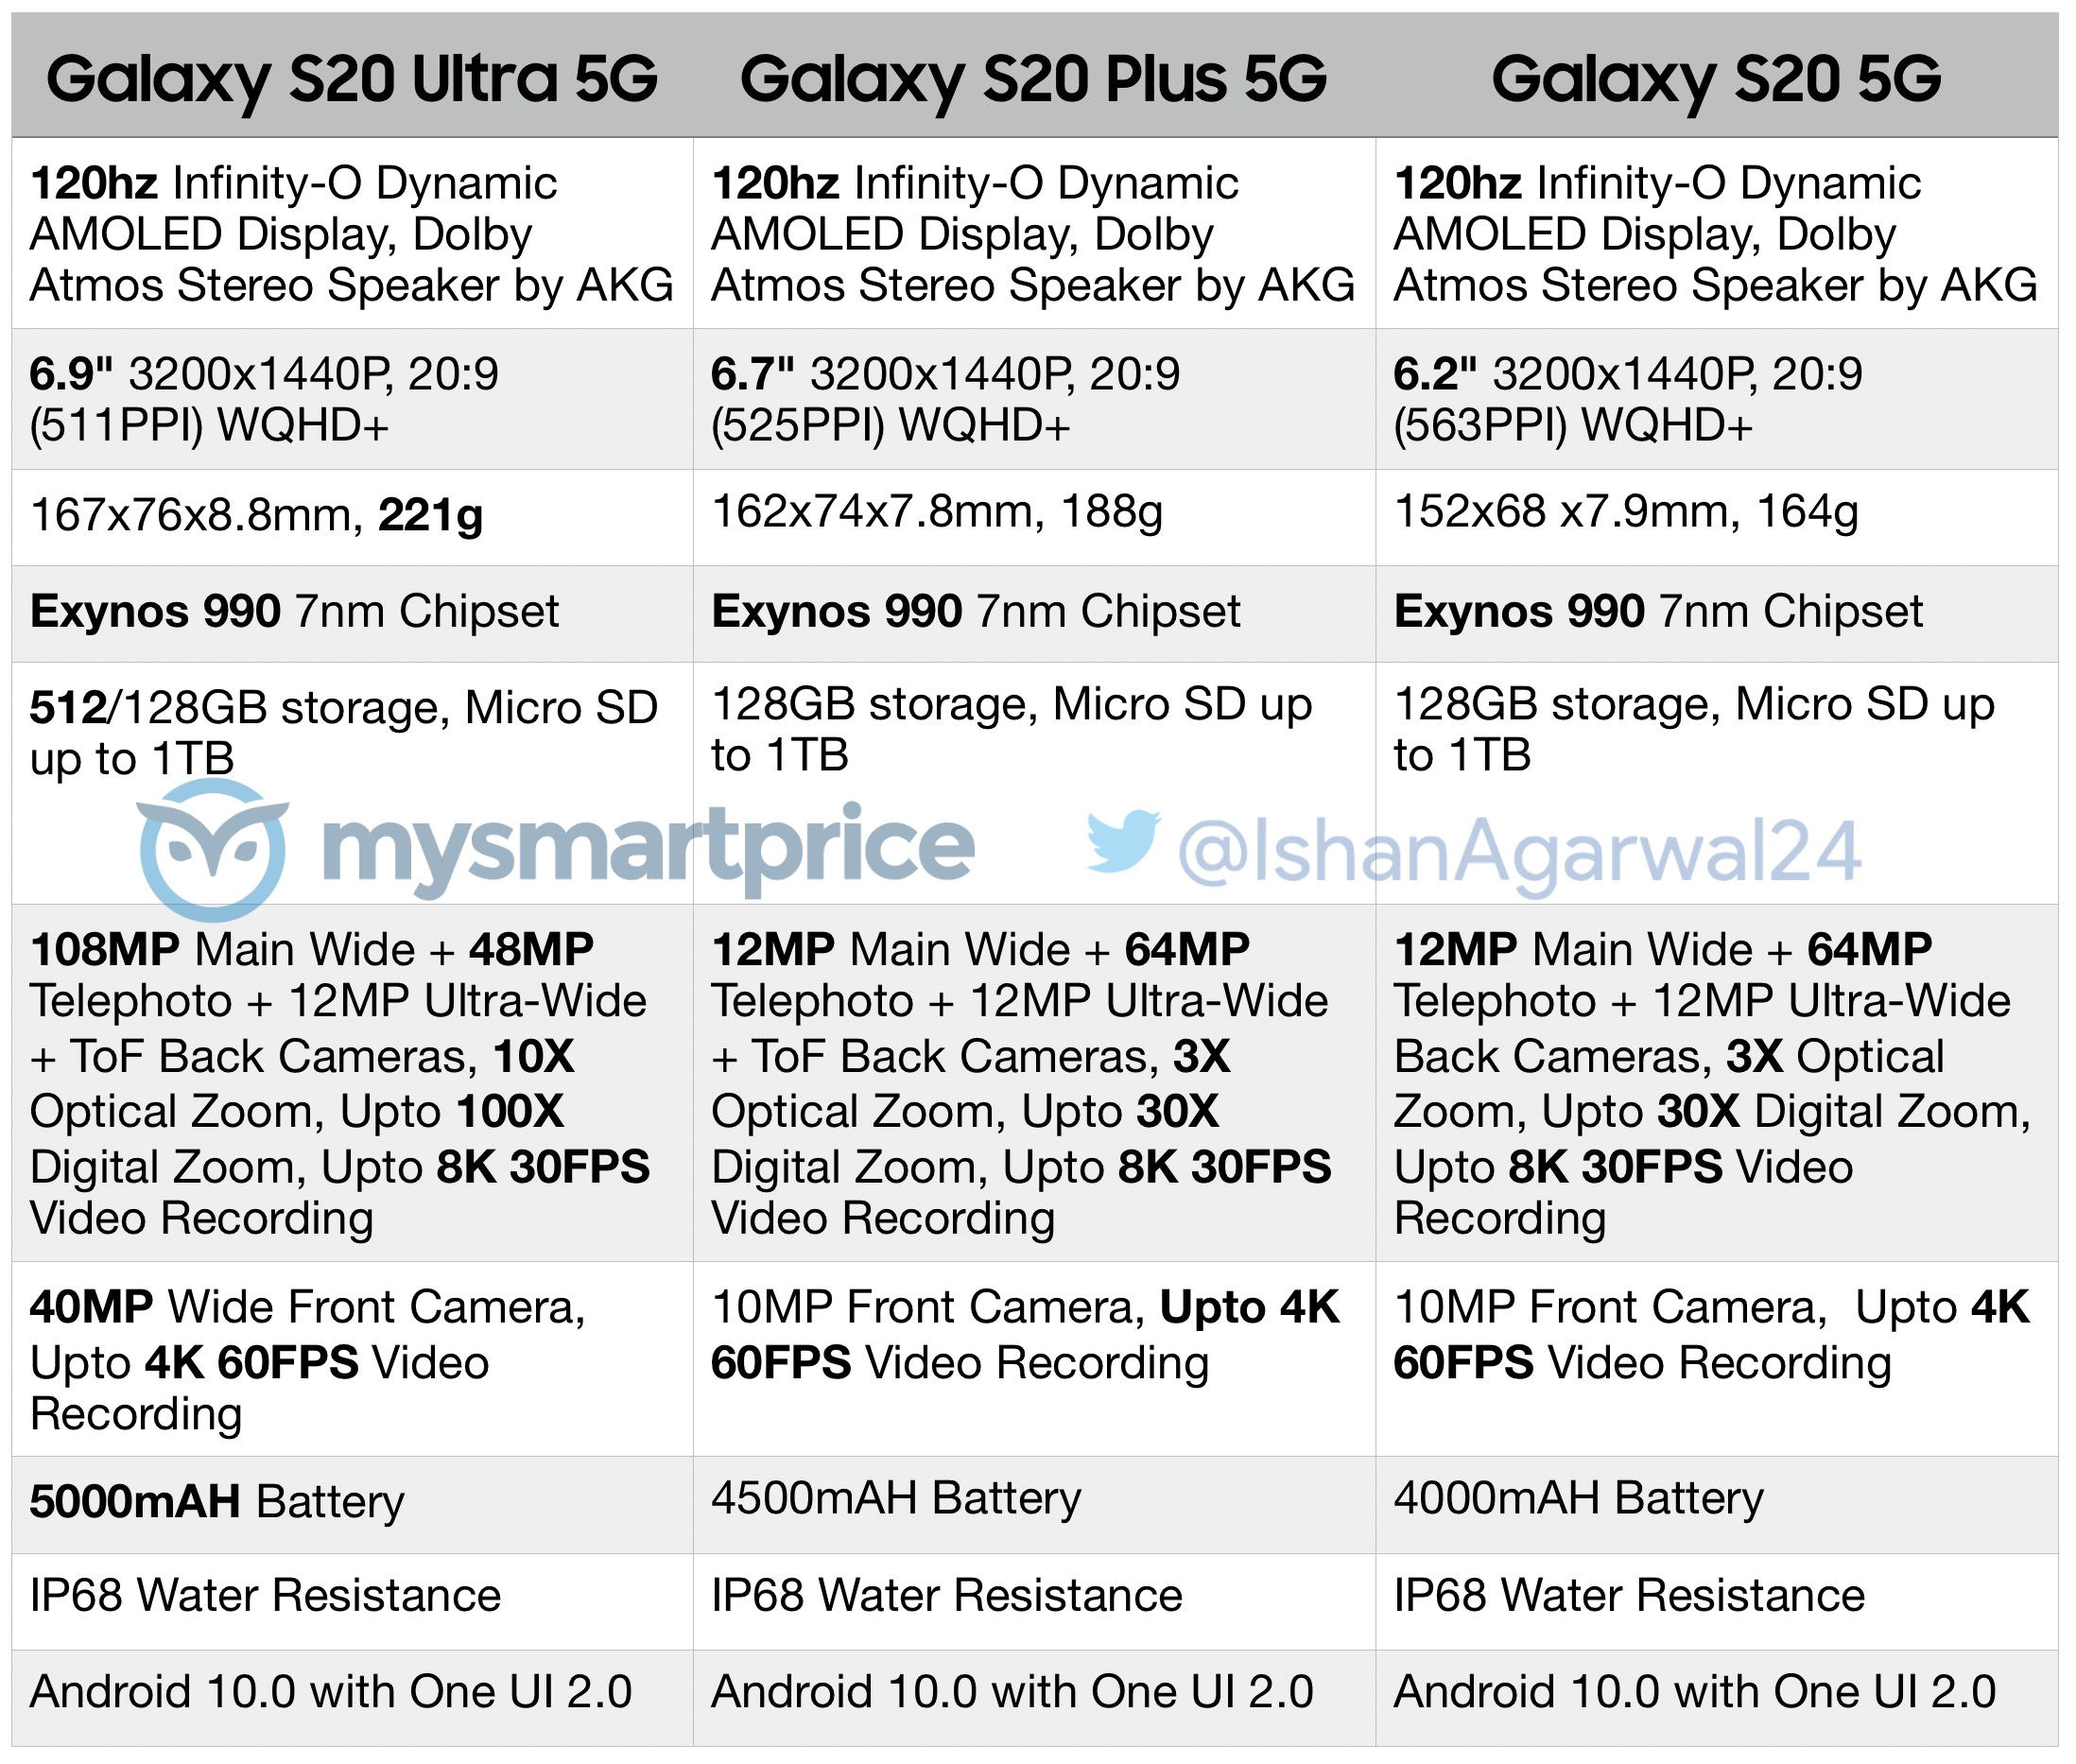 https://mspoweruser.com/wp-content/uploads/2020/01/Samsung-Galaxy-S20-Series-Full-Specs.jpg